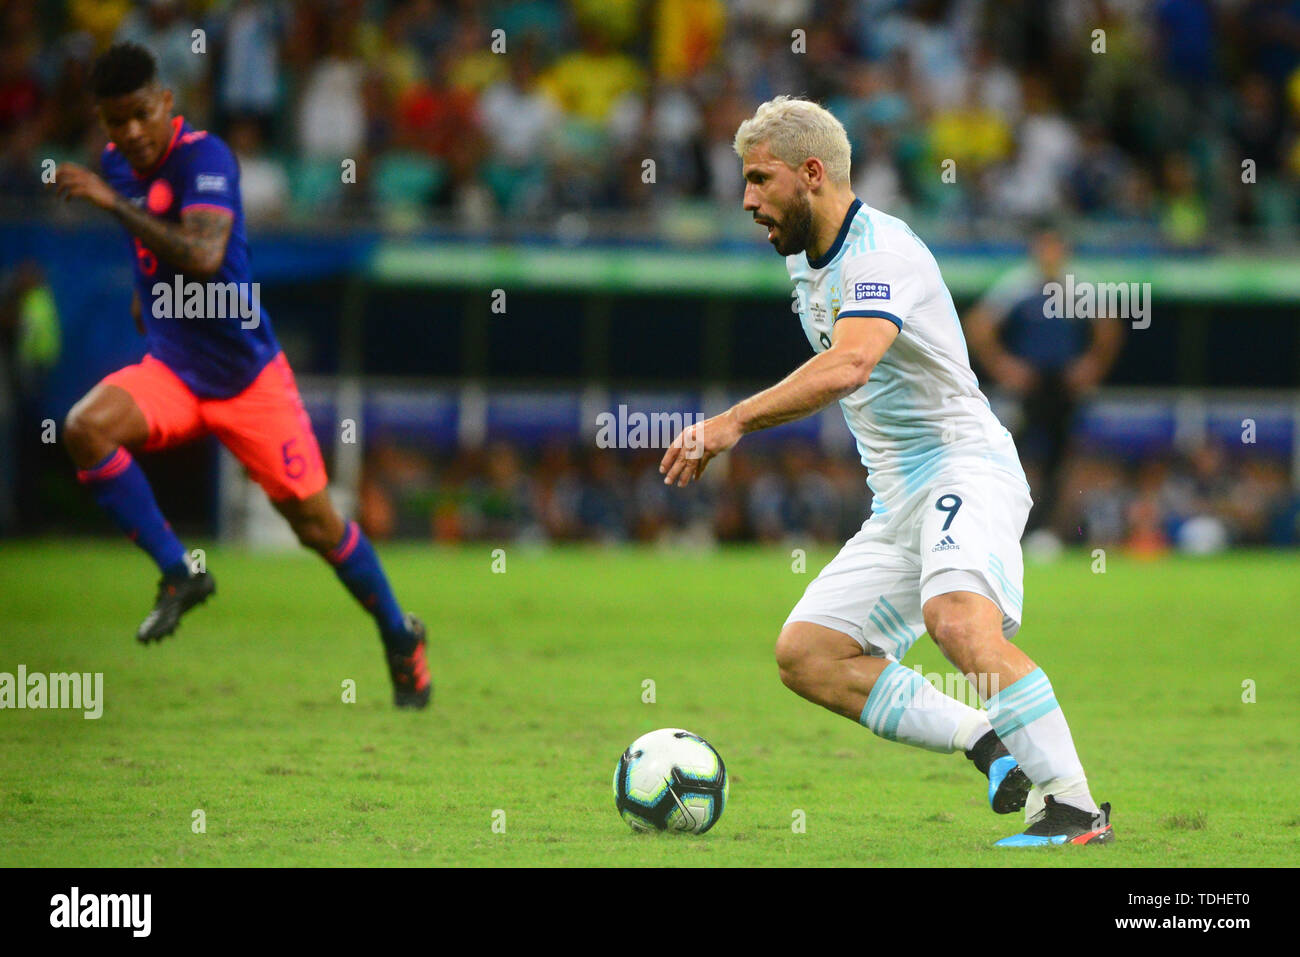 15th June 2019, Arena Fonte Nova, Salvador, Bahia, Brazil; Copa America International Football tournament, Argentina versus Colombia;  Sergio Agüero of Argentina breaks towards goal with the ball - Stock Image